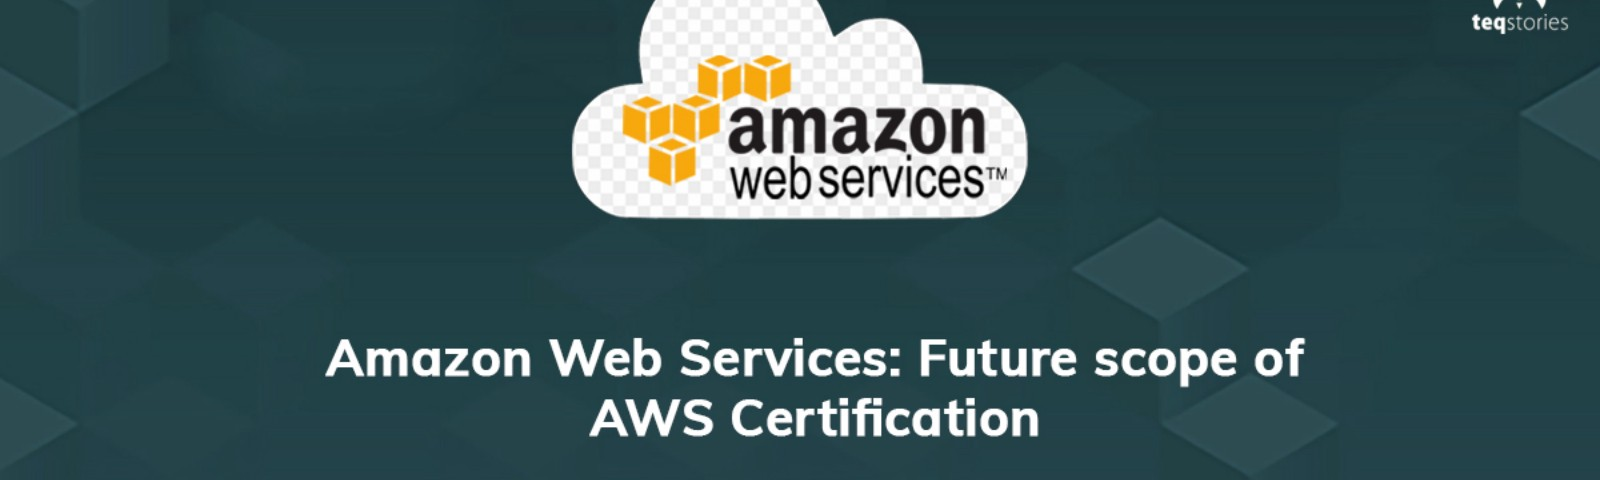 Amazon Web Services Future Scope Of Aws Certification By Teqstories Medium